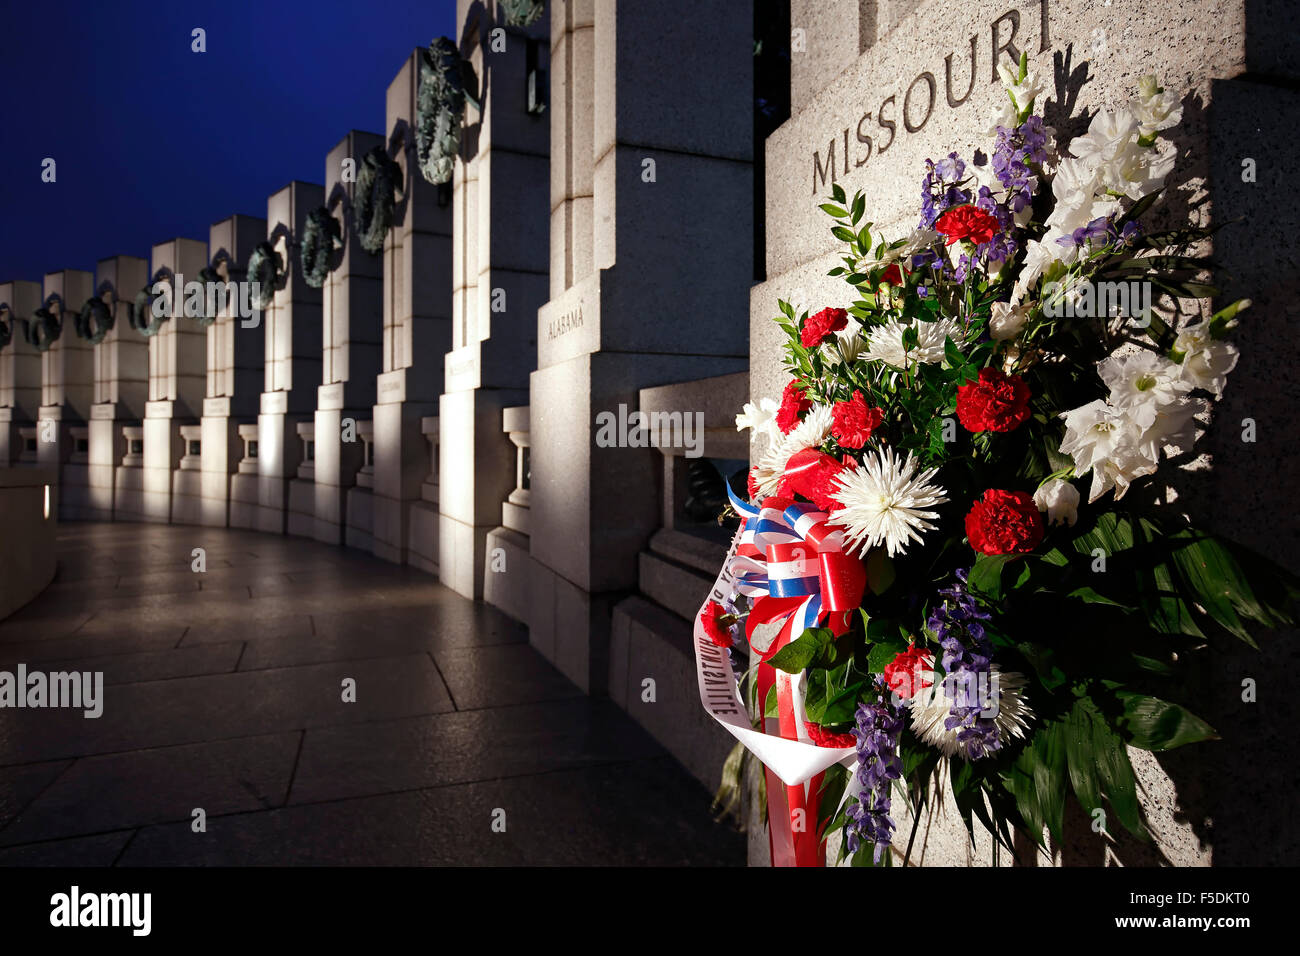 Flowers and World War II Memorial, Washington, District of Columbia USA - Stock Image